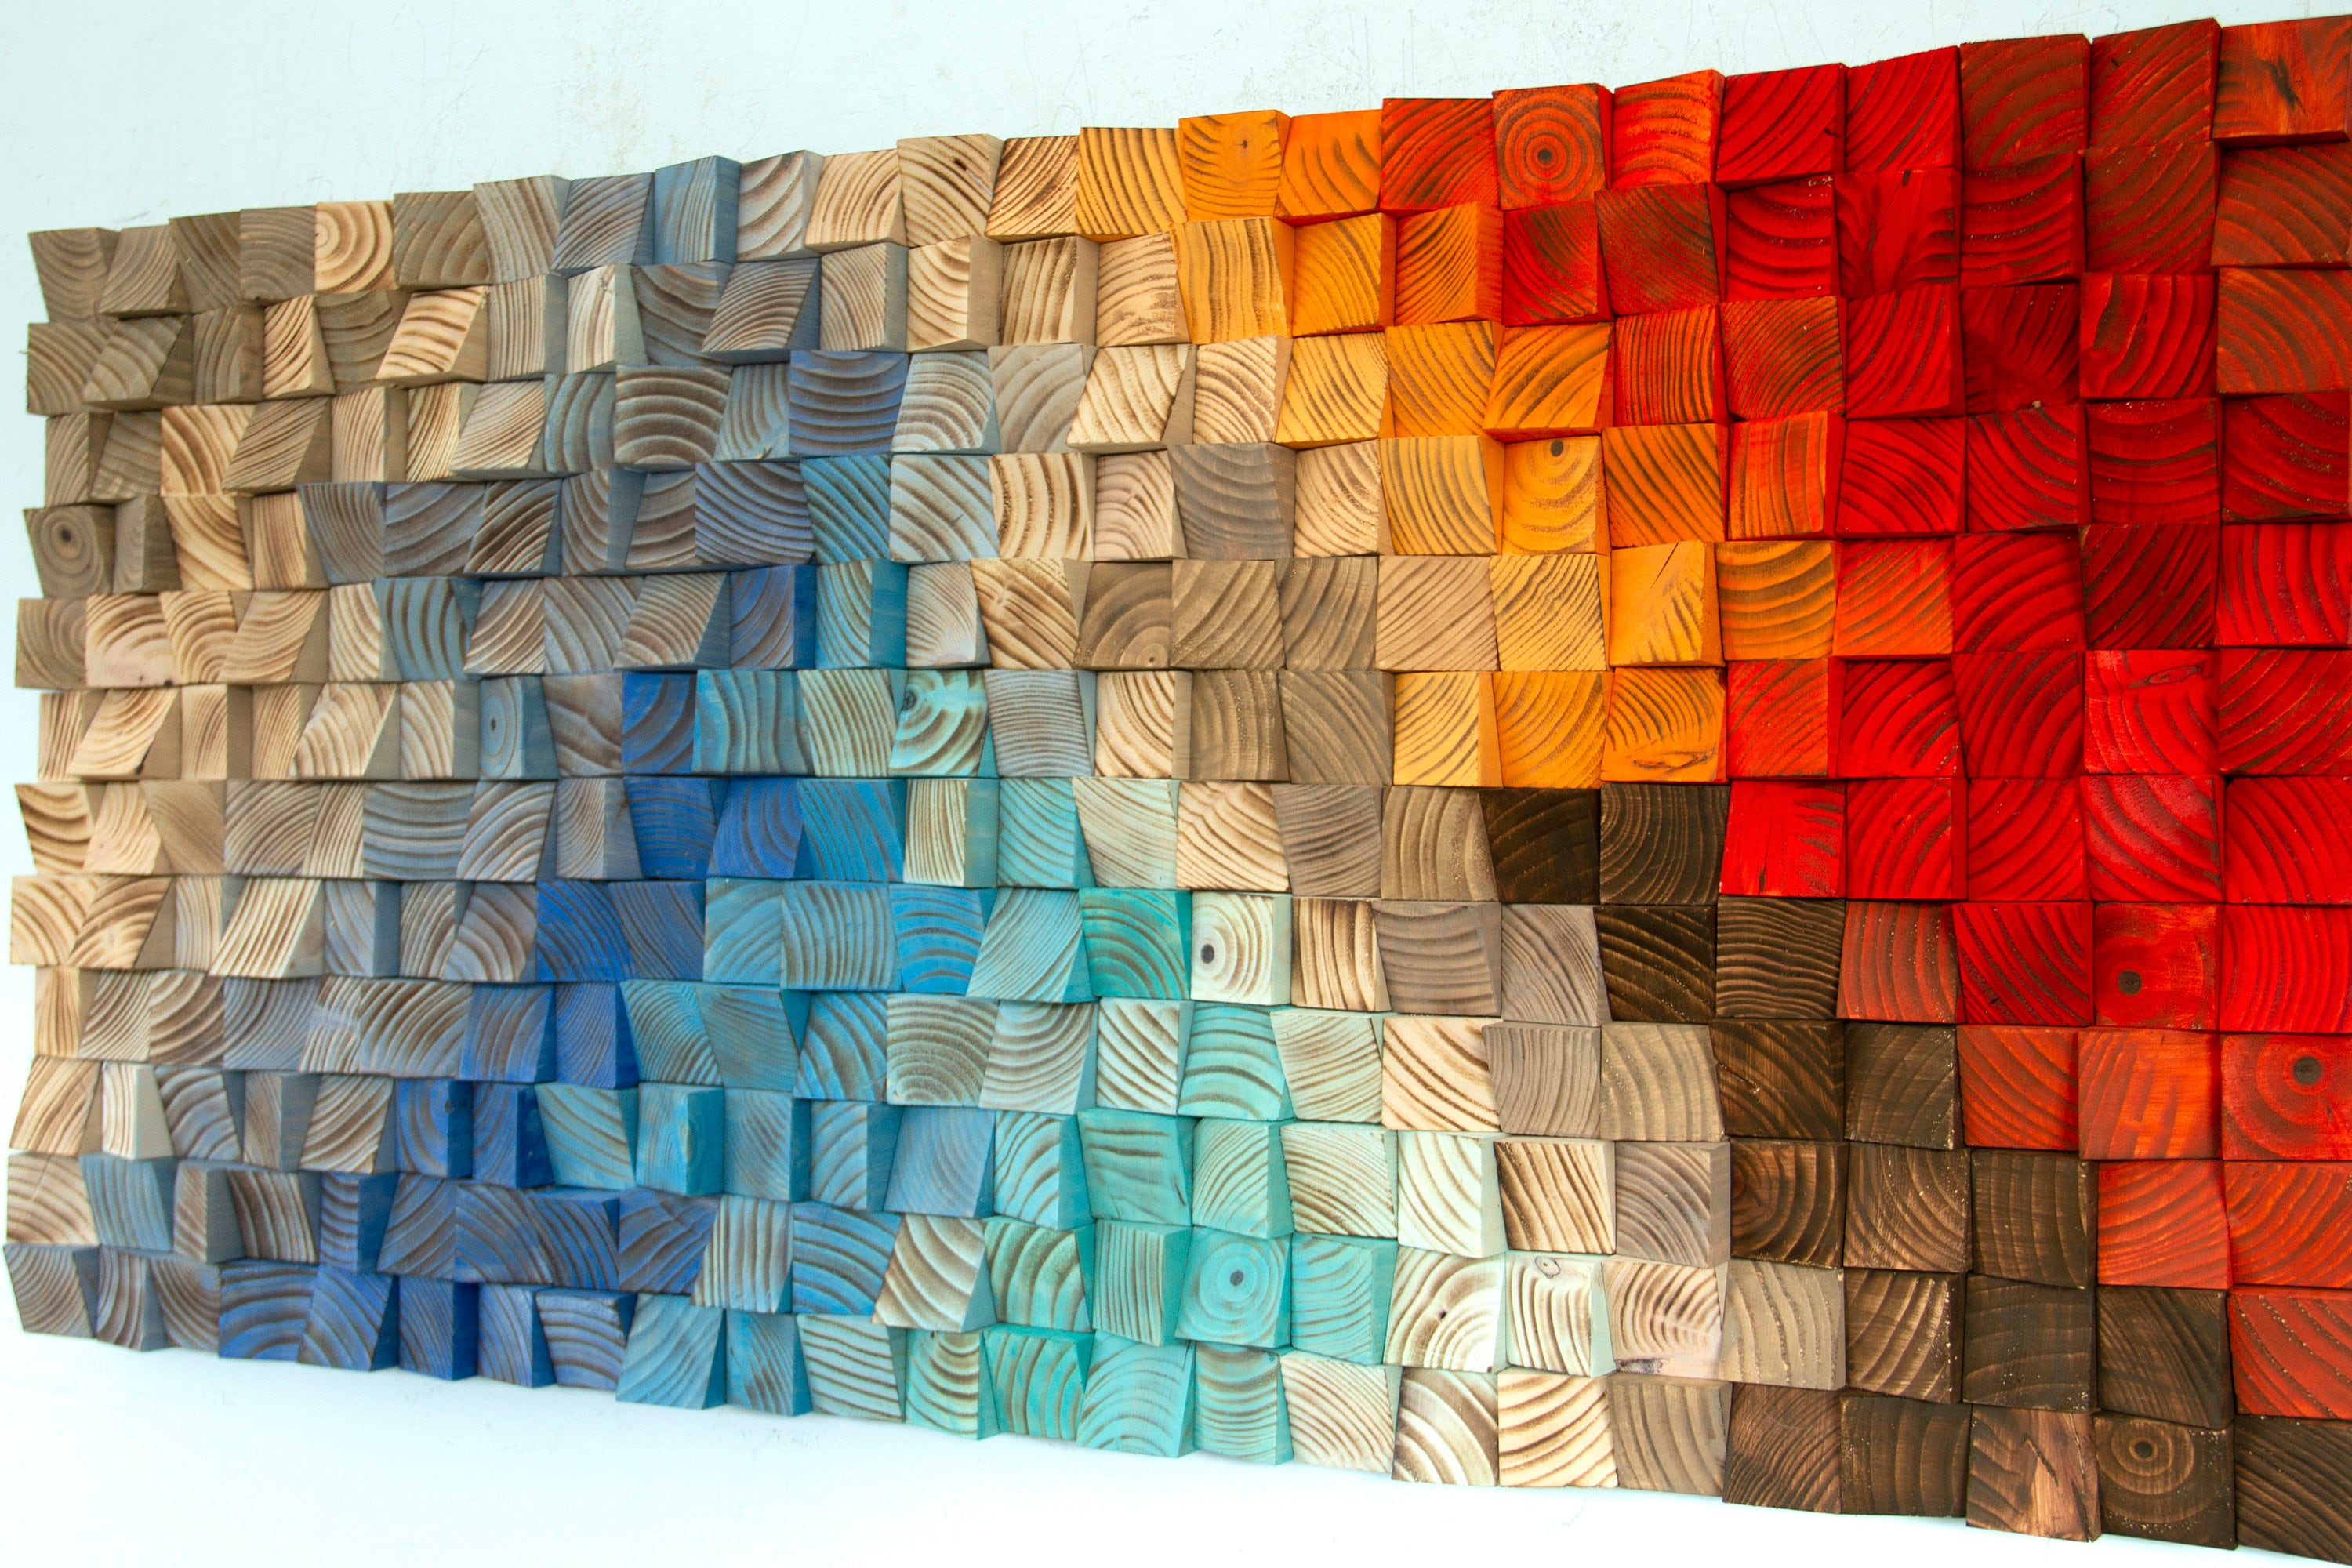 Abstract Wood Wall Art Rainbow Wood Wall Art 2019 Trends Abstract Painting On Wood